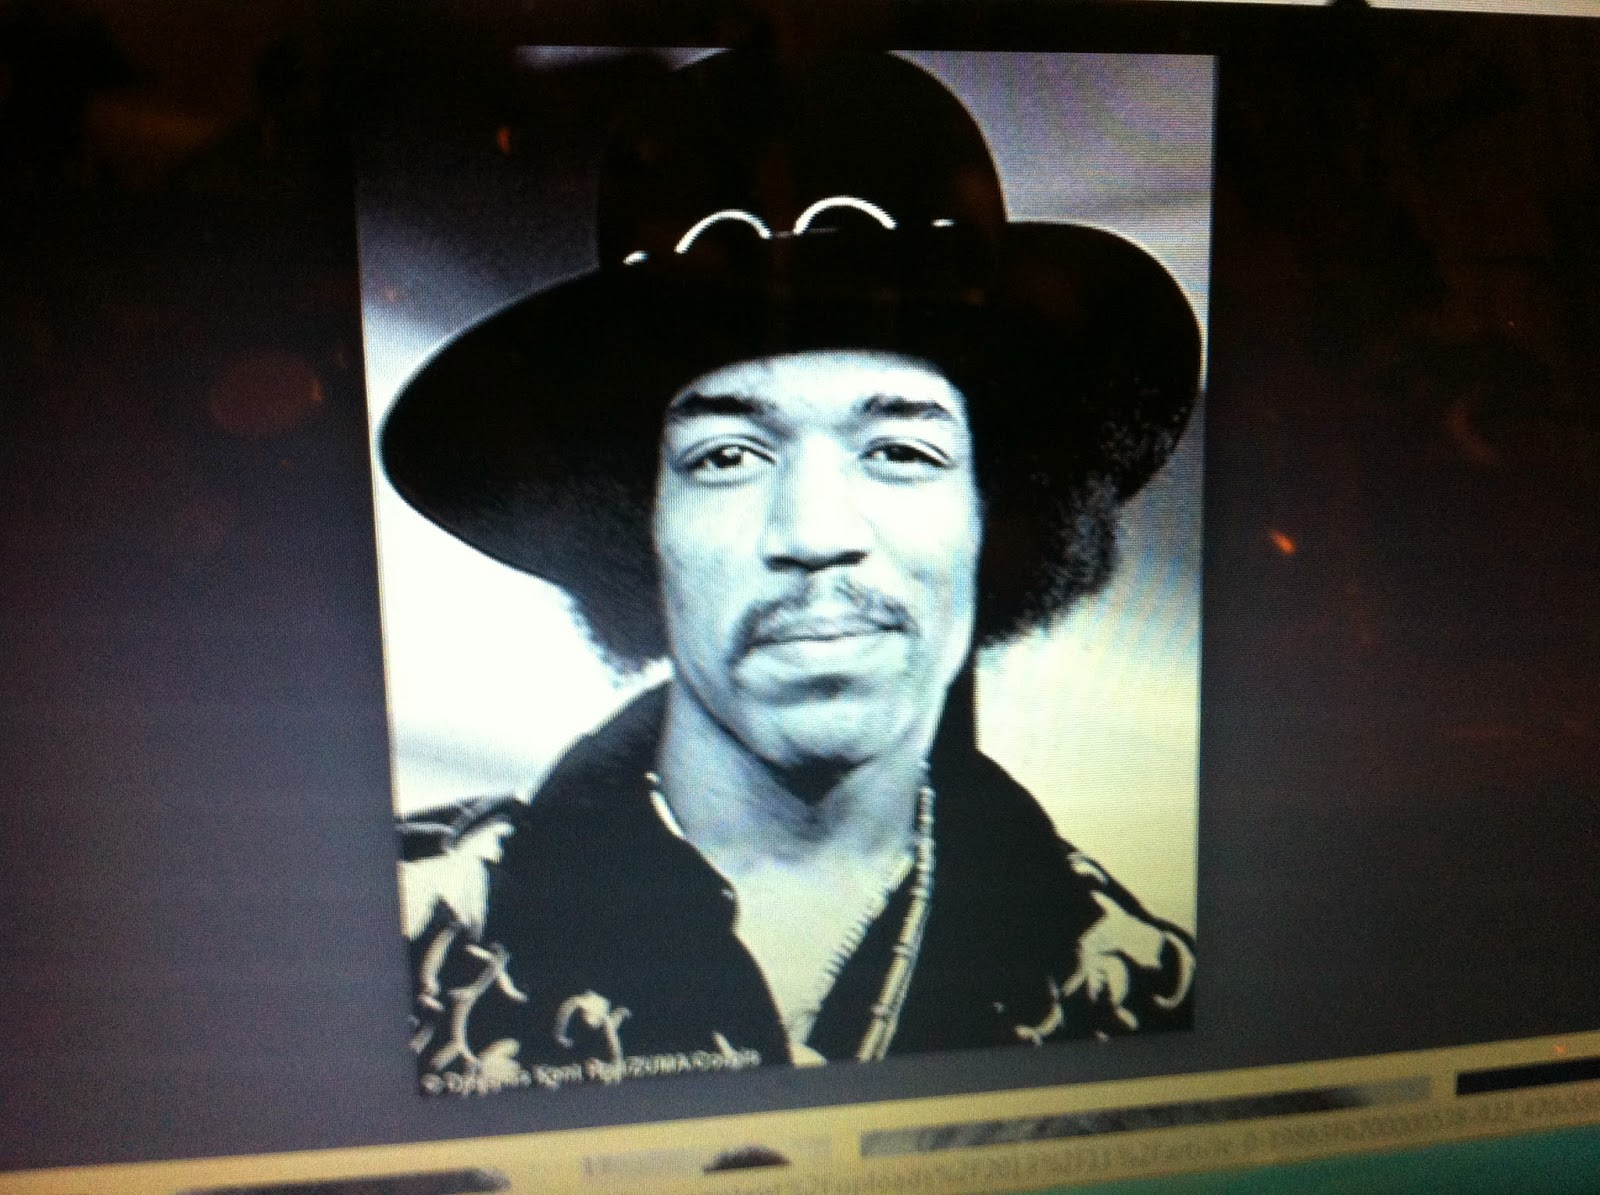 a biography of jimi hendrix a guitarist Jimi hendrix was born 75 years ago today he was only 27 when he died on sept  18, 1970 but in that short time hendrix irrevocably changed.